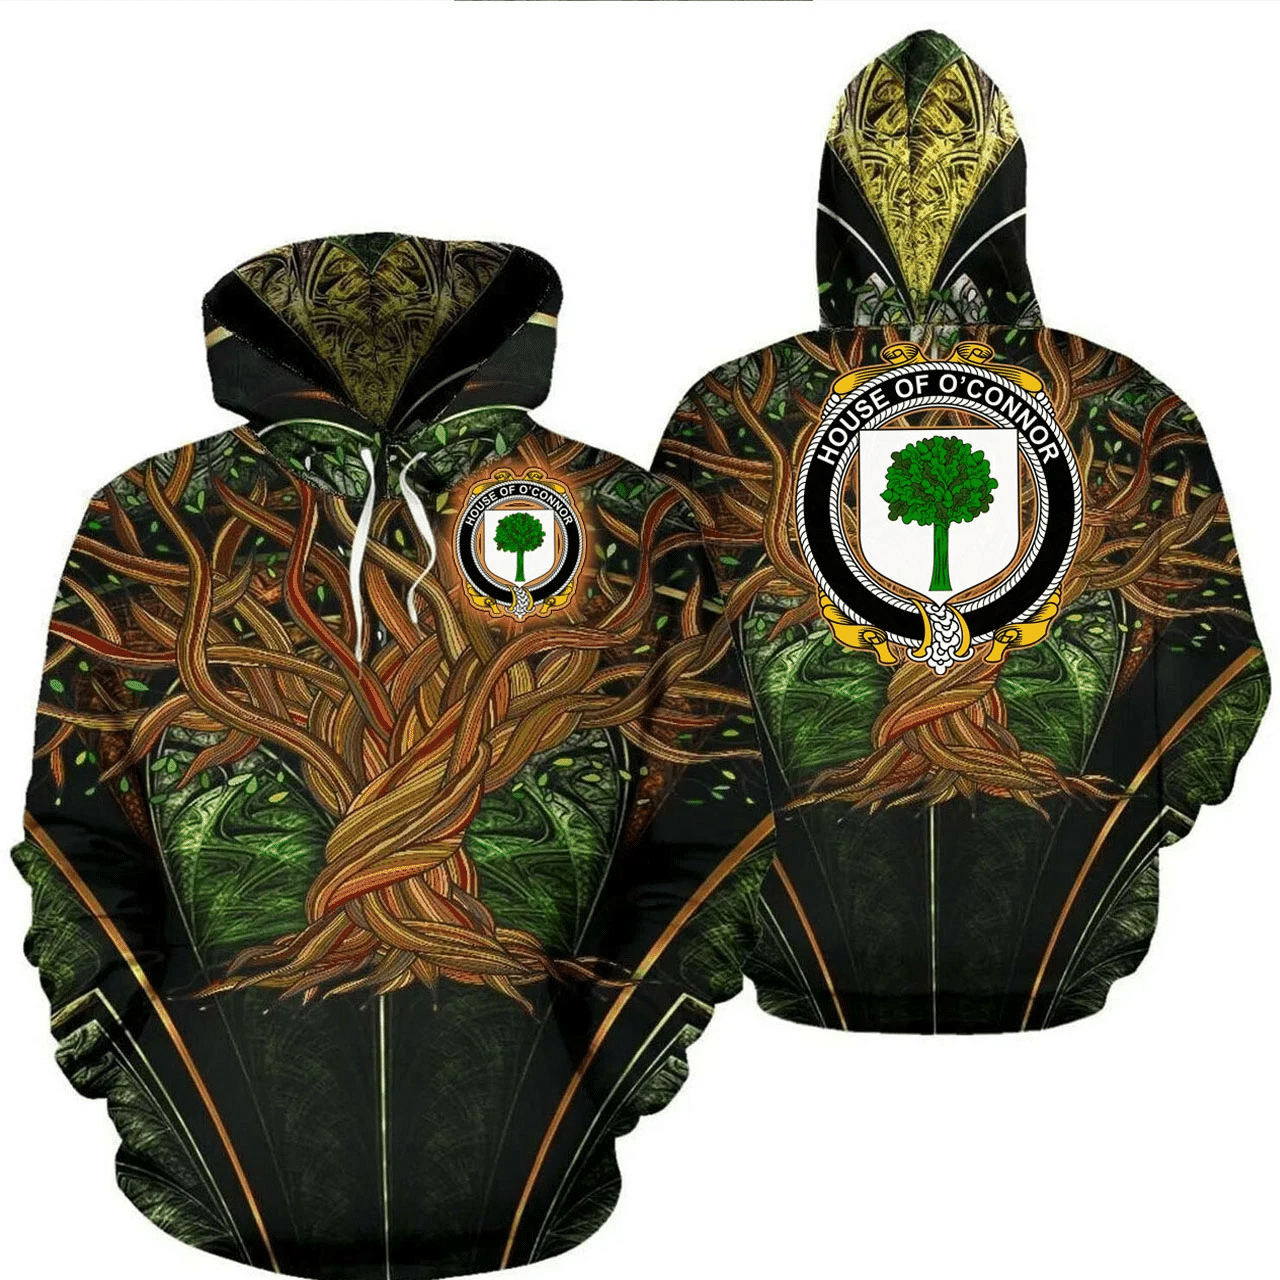 1stIreland Ireland Hoodie - House of O'CONNOR (Don) Irish Family Crest Hoodie - Tree Of Life A7